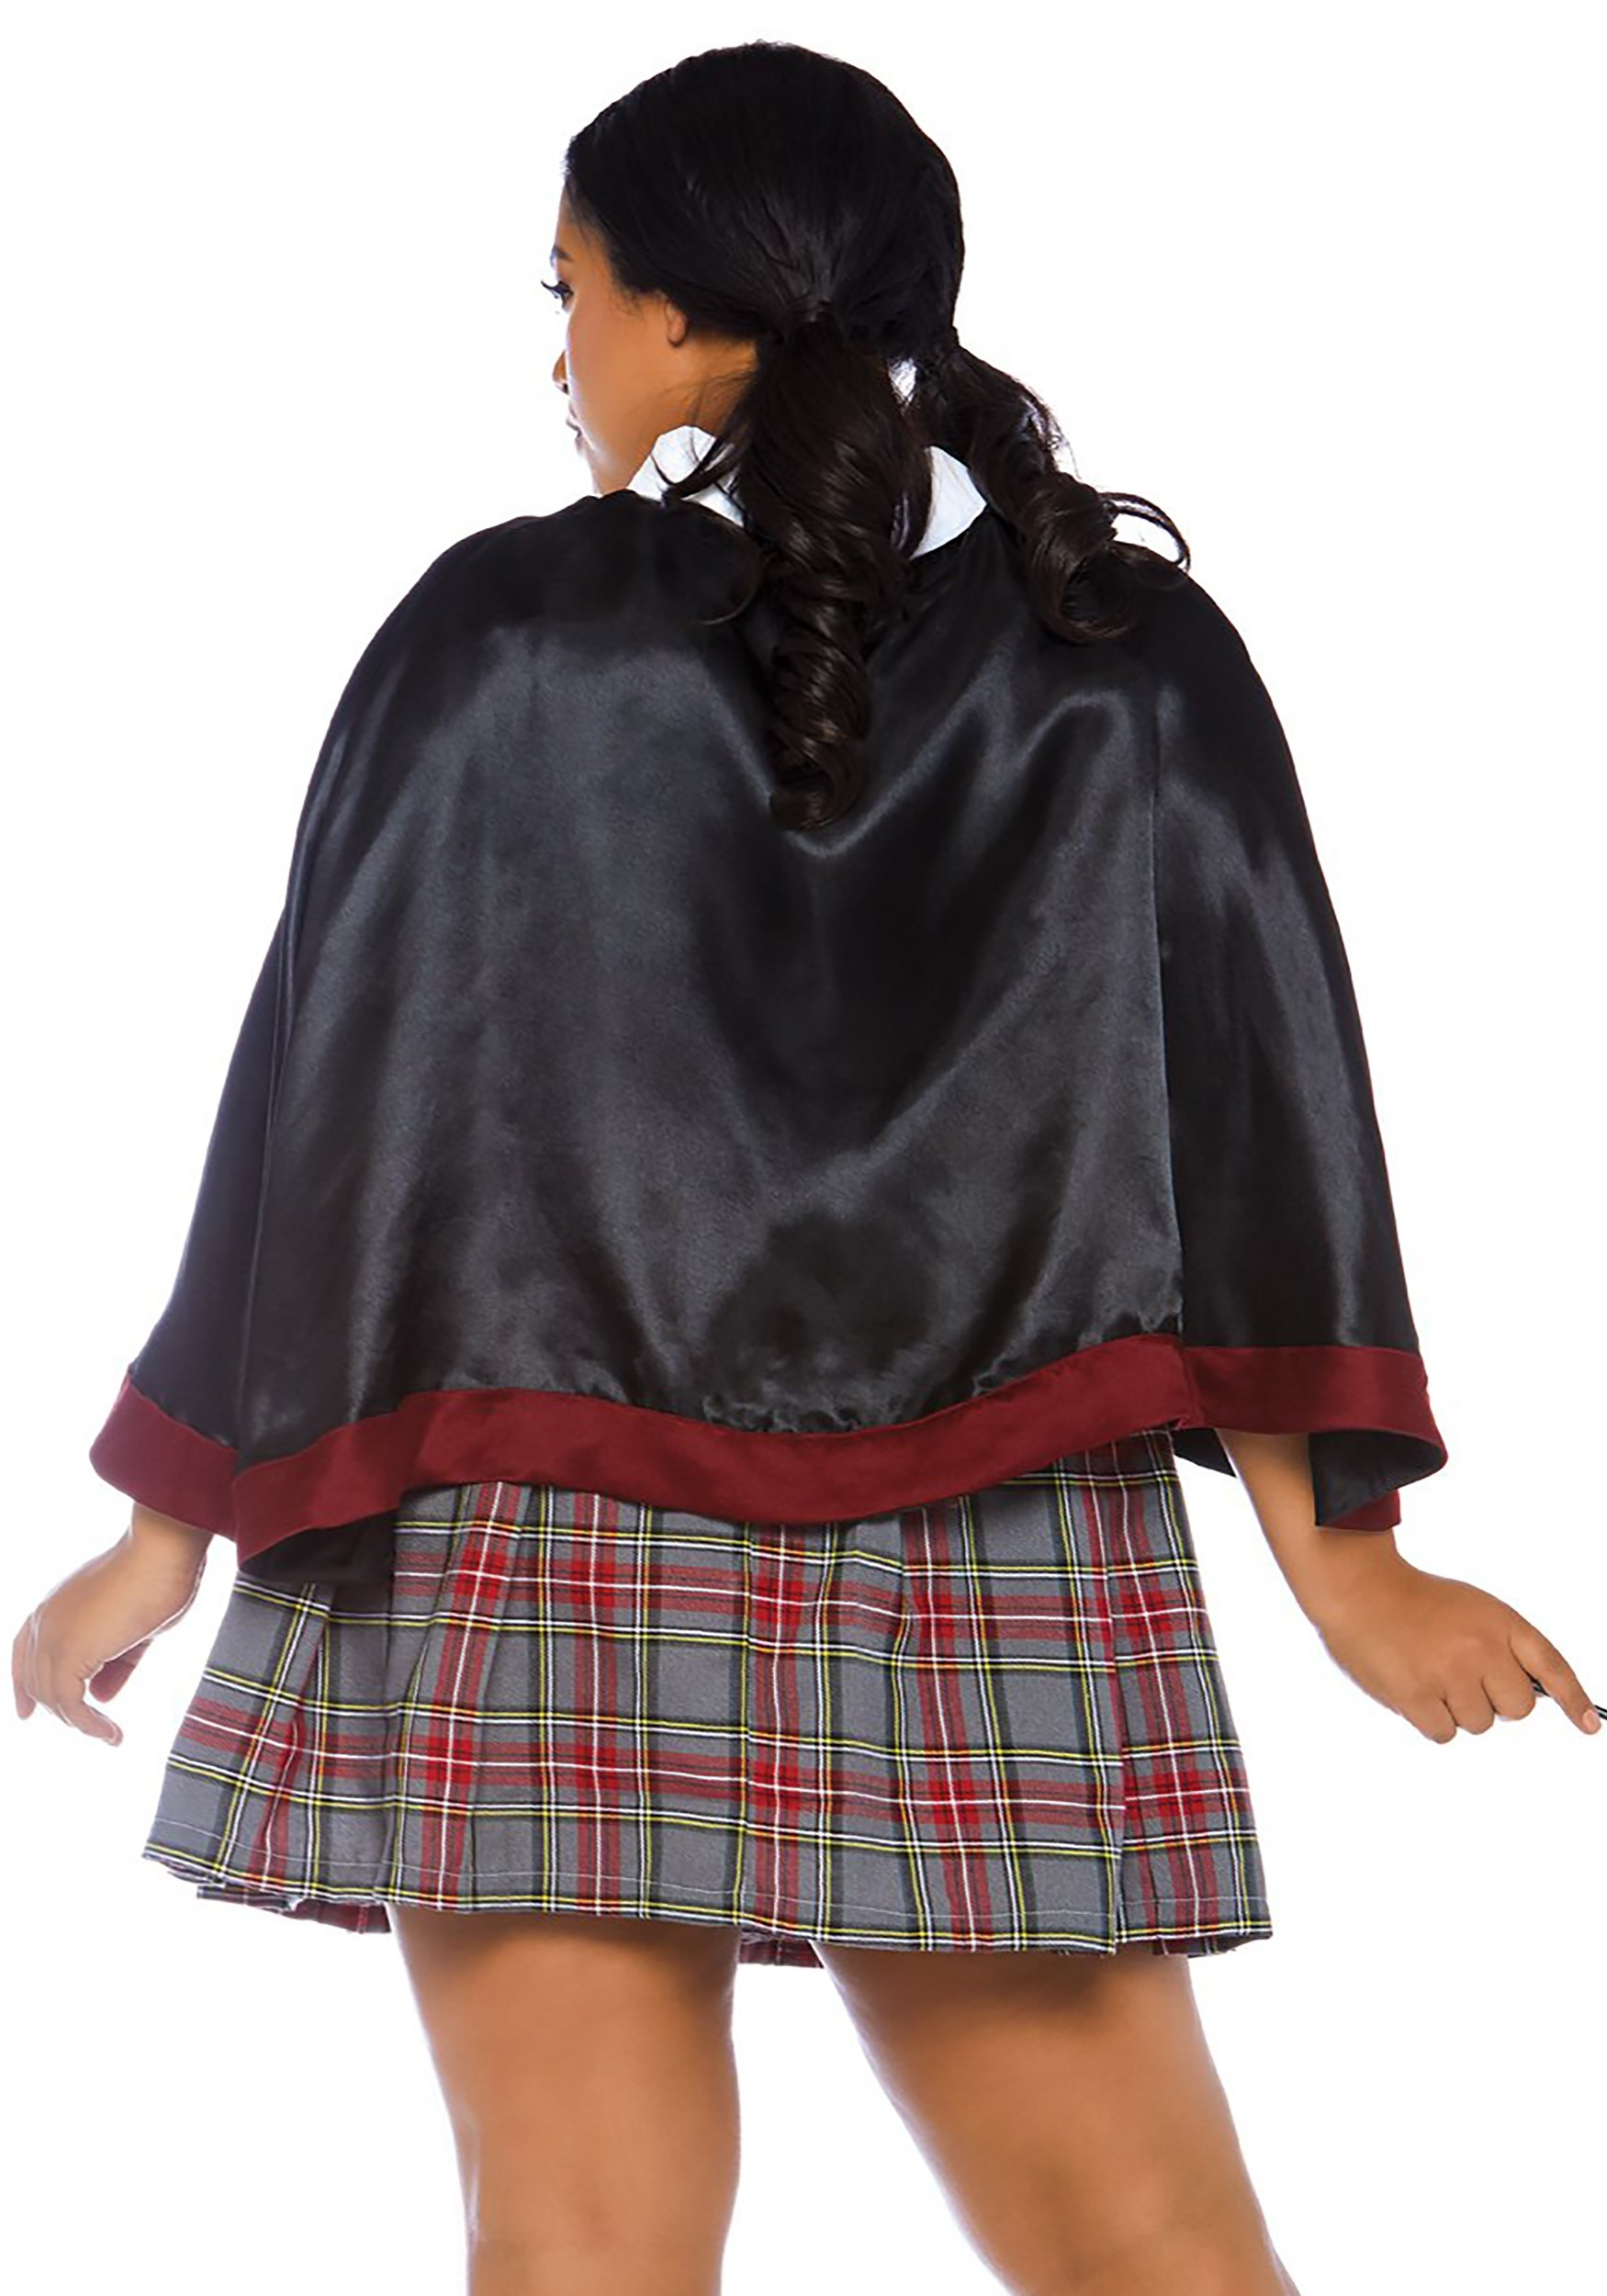 fc1ccea9f3 Plus Size School Girl Skirts For Adults | Saddha